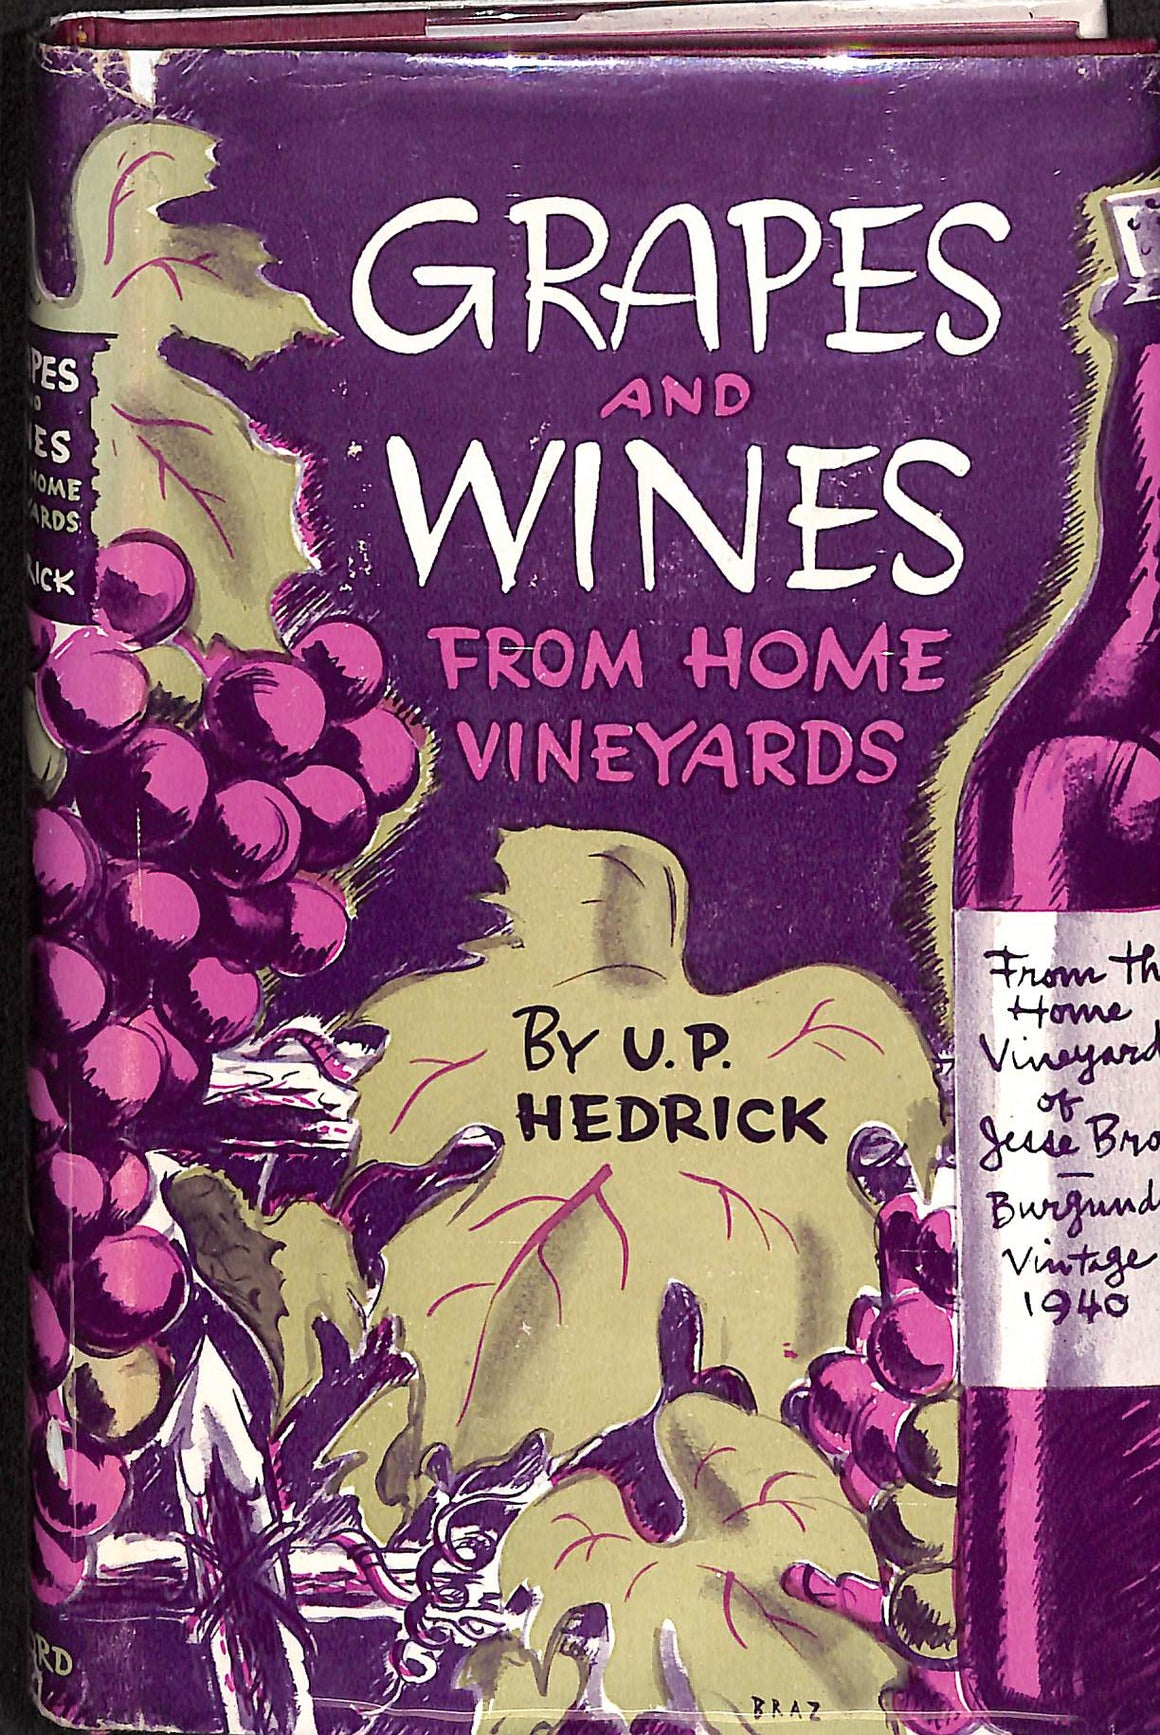 Grapes and Vines: From Home Vineyards